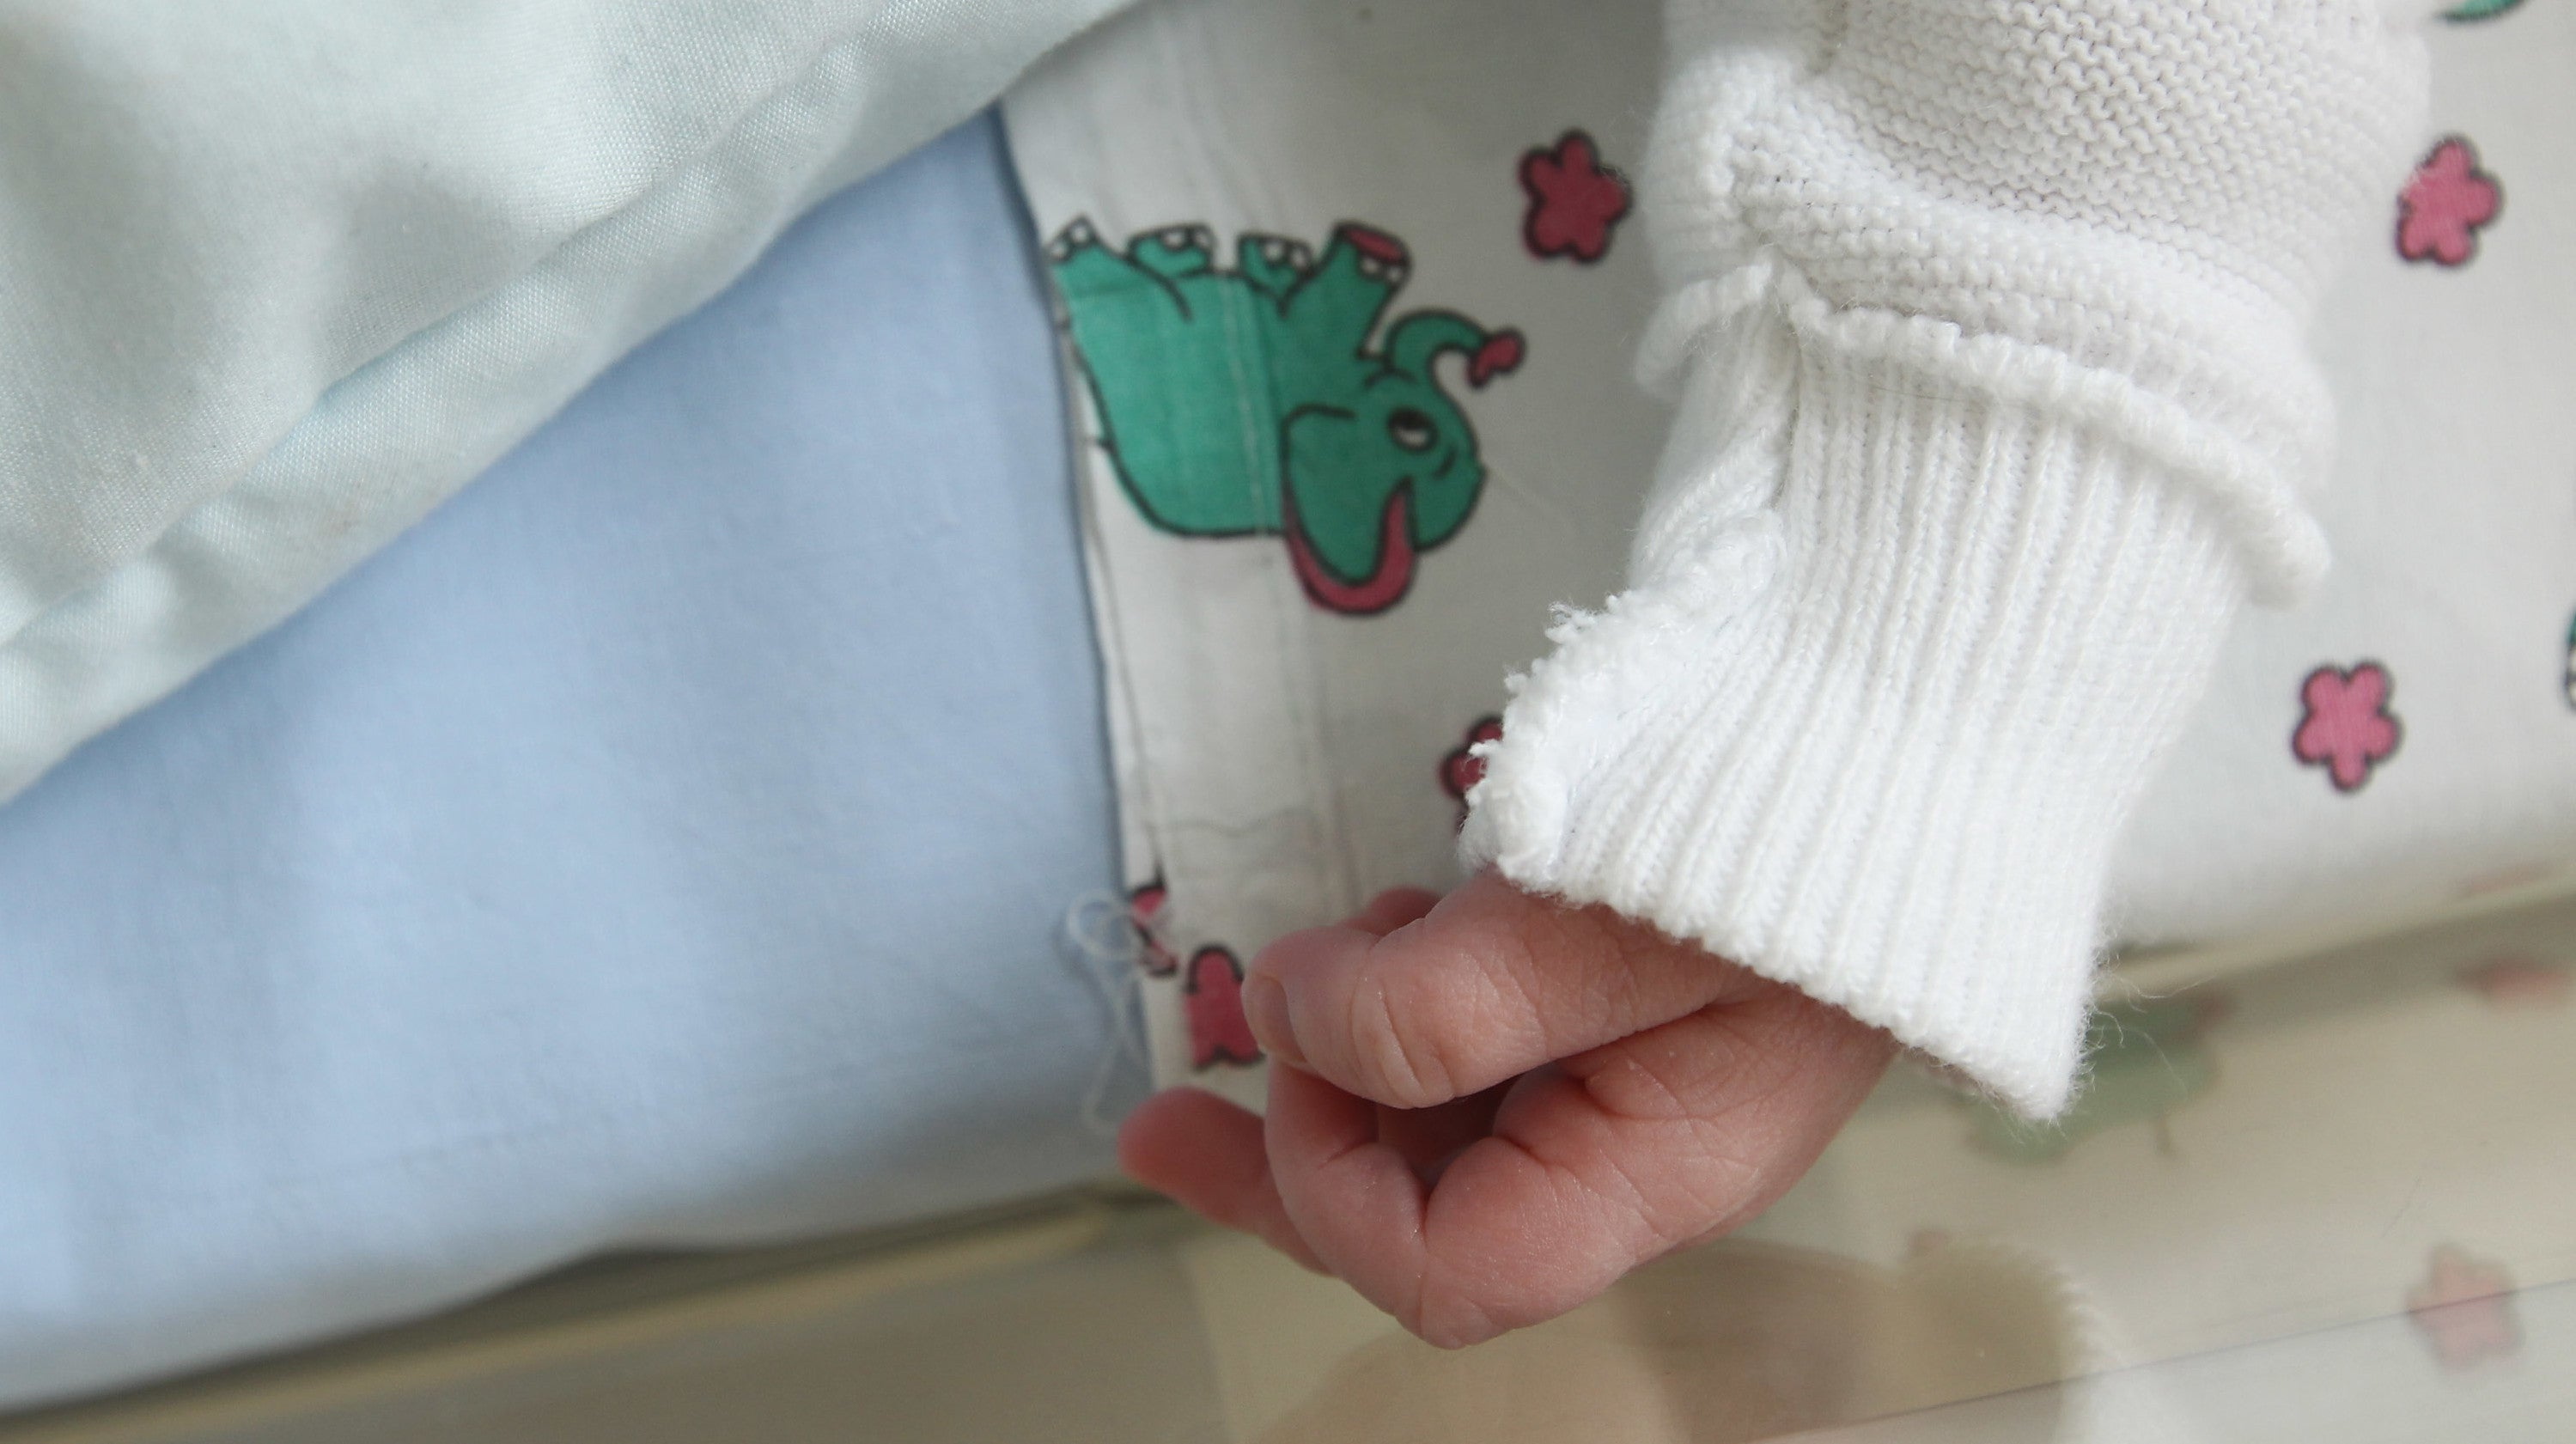 People Born Prematurely May Have More Romantic Trouble As Adults, Study Finds